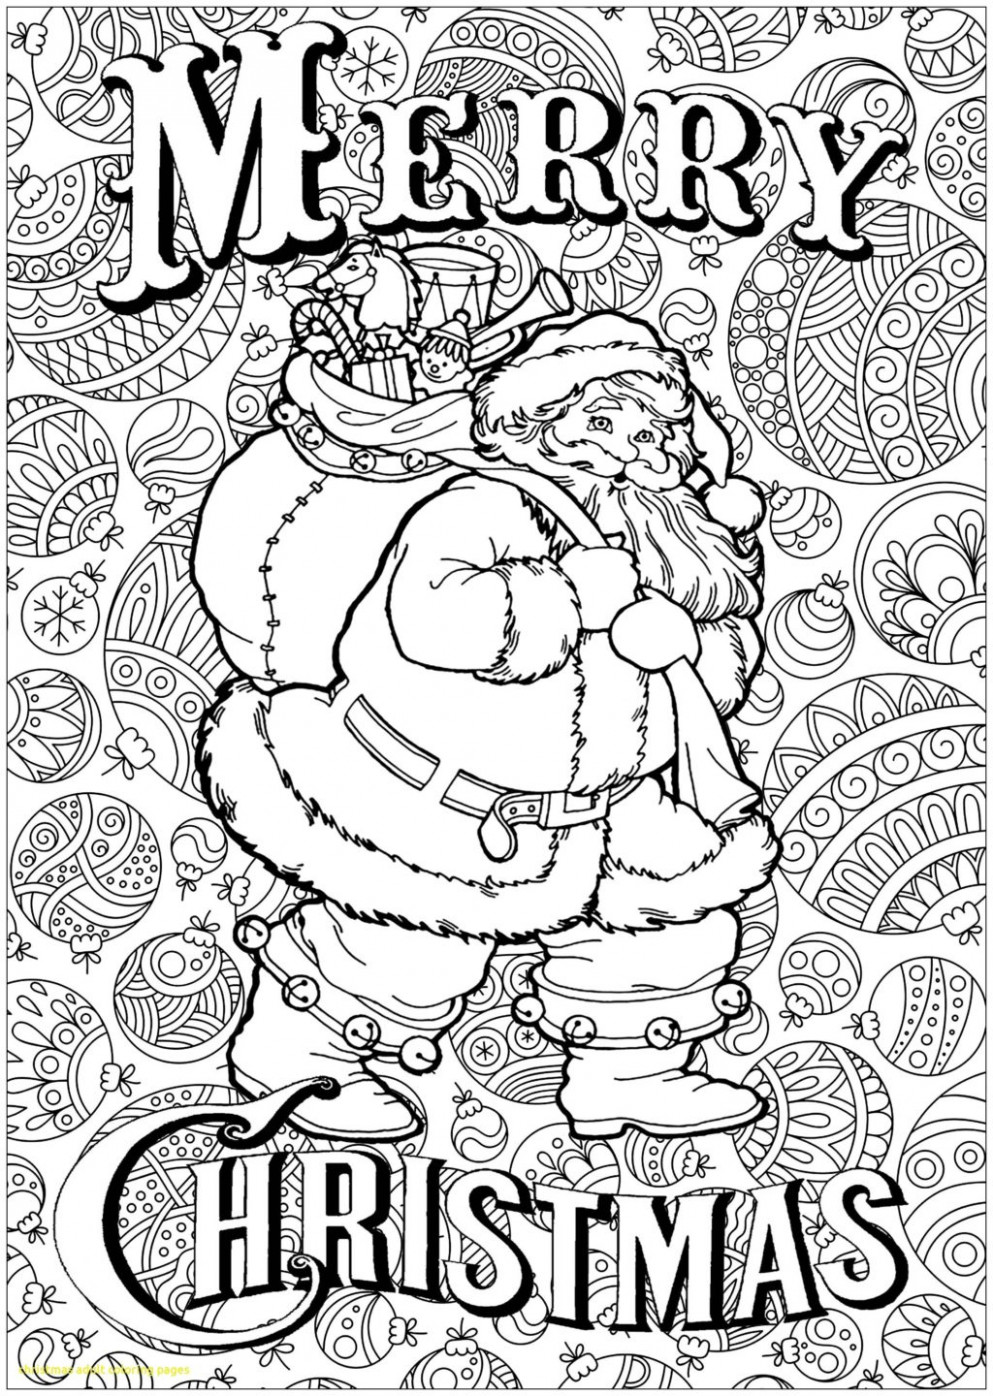 Coloring Book World ~ Charlie Brown Christmas Coloring Pages Pdf ...